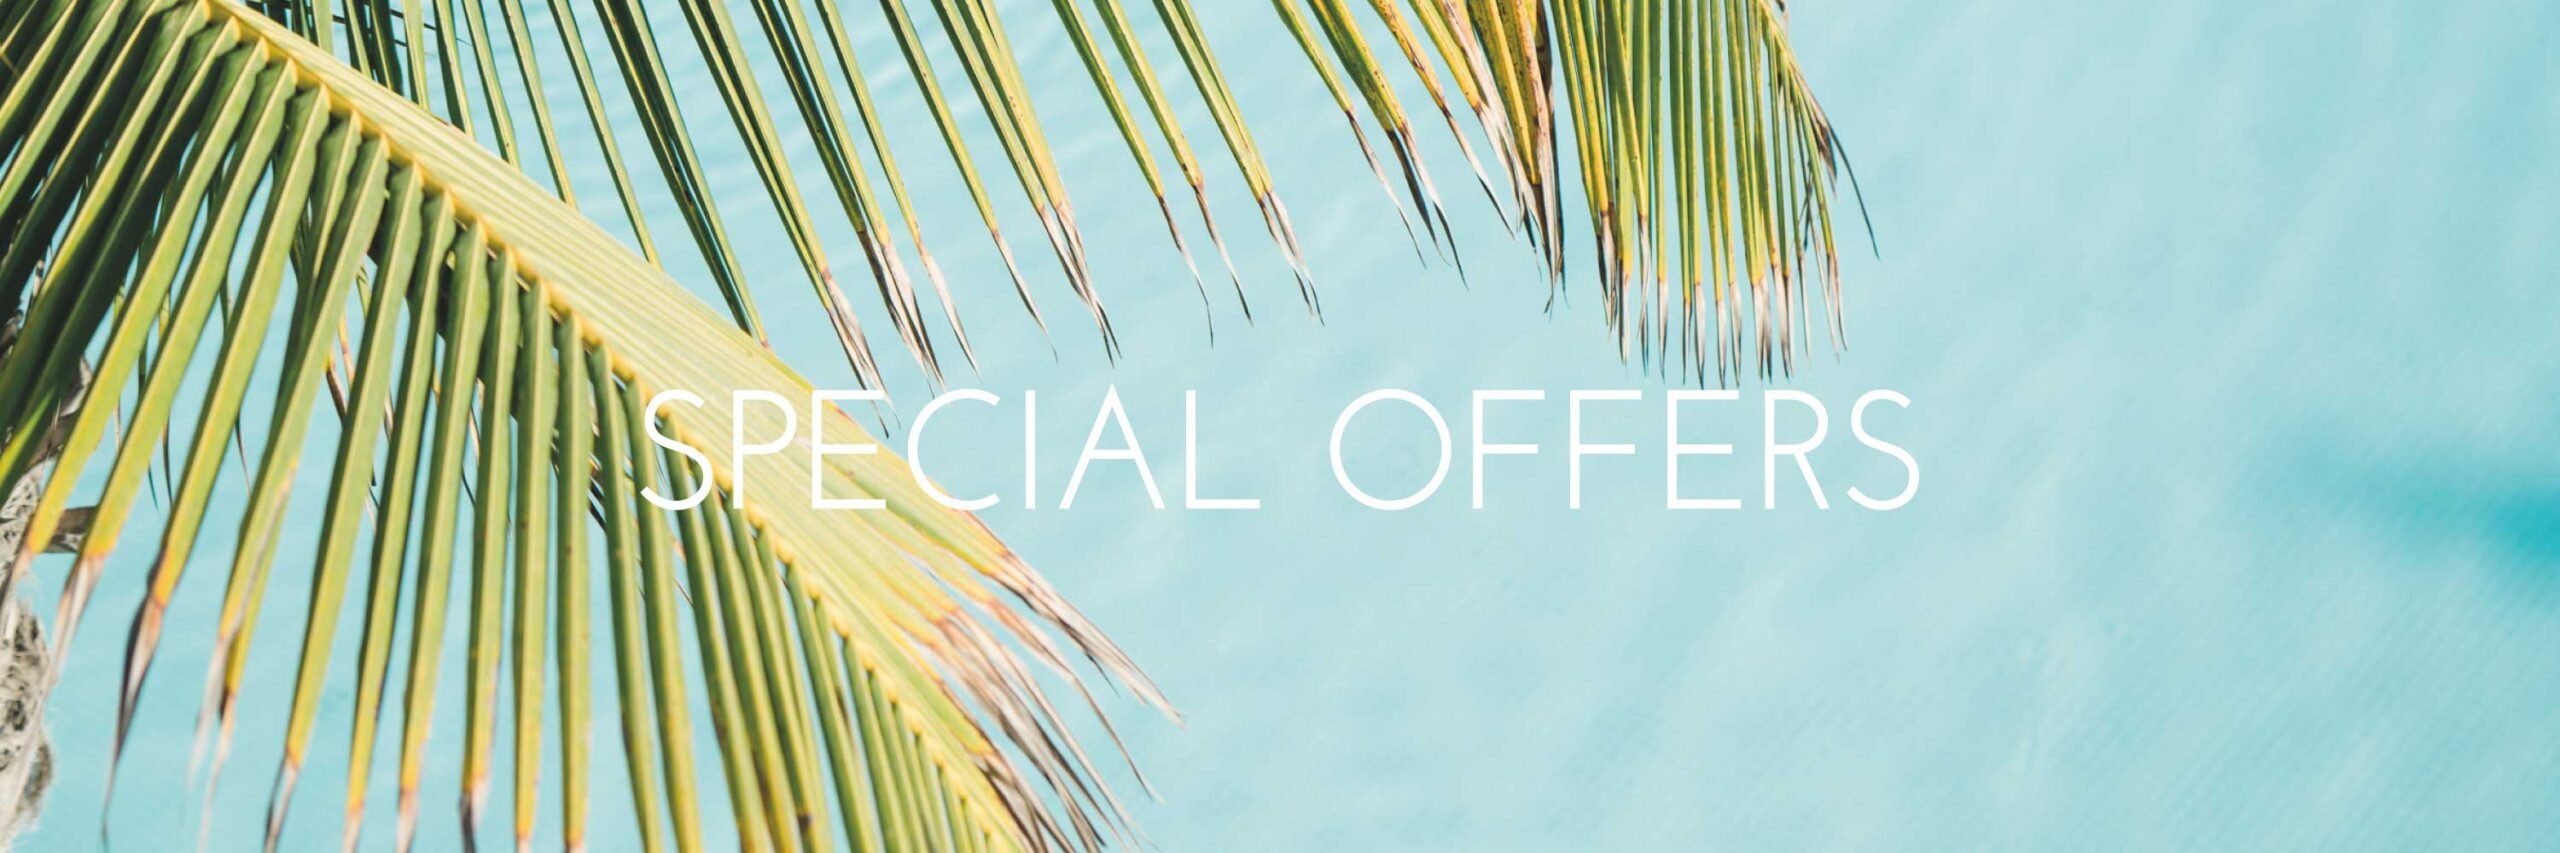 special-offers-web-copia